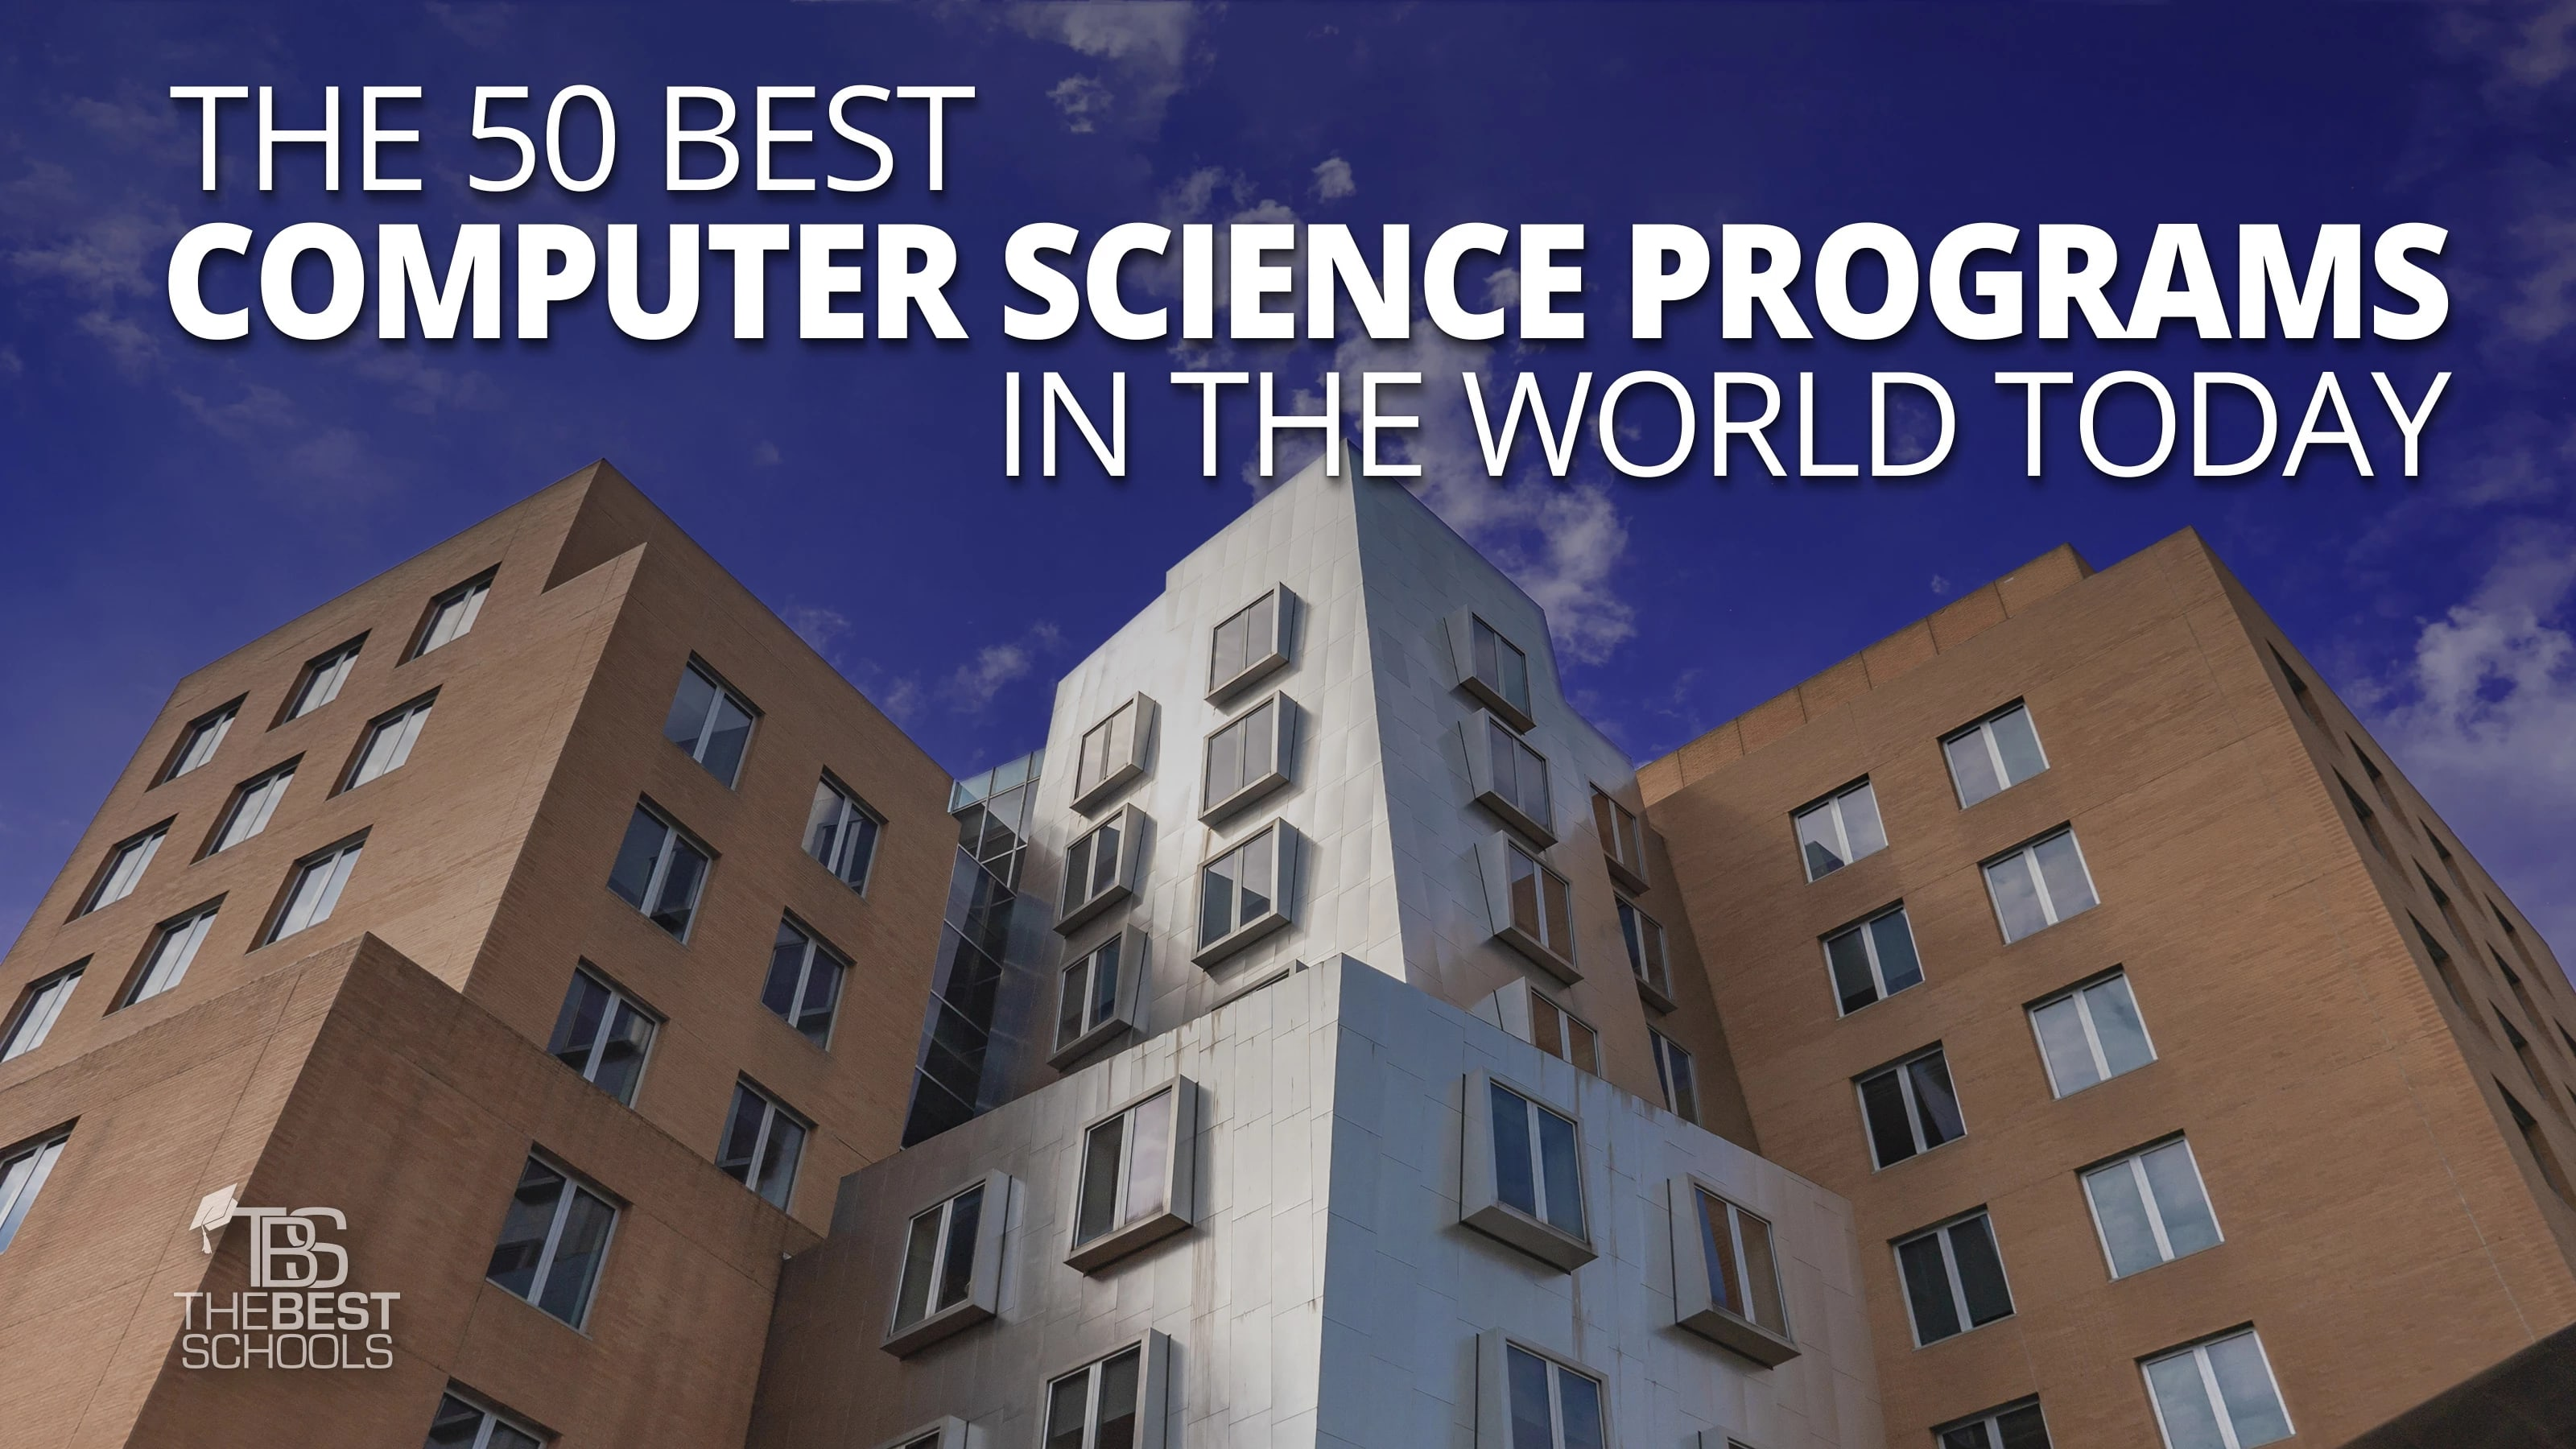 Best Alliance Server 2020 The 50 Best Computer Science Programs in the World